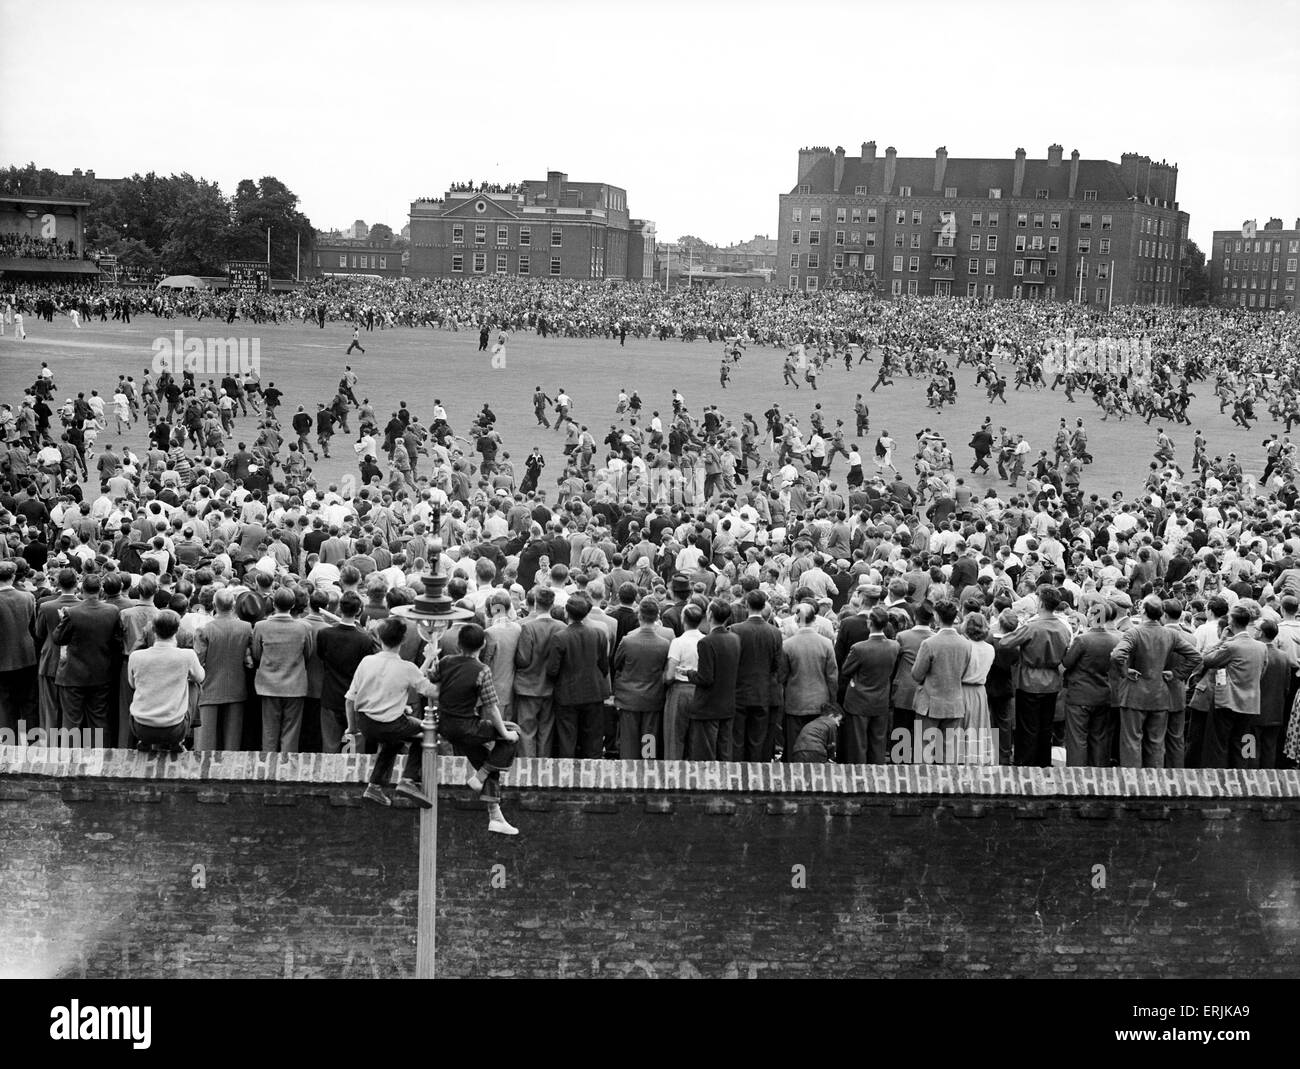 England v Australia Fifth Test match at the Oval for the Ashes. The crowds rush onto the pitch at the end as they - Stock Image